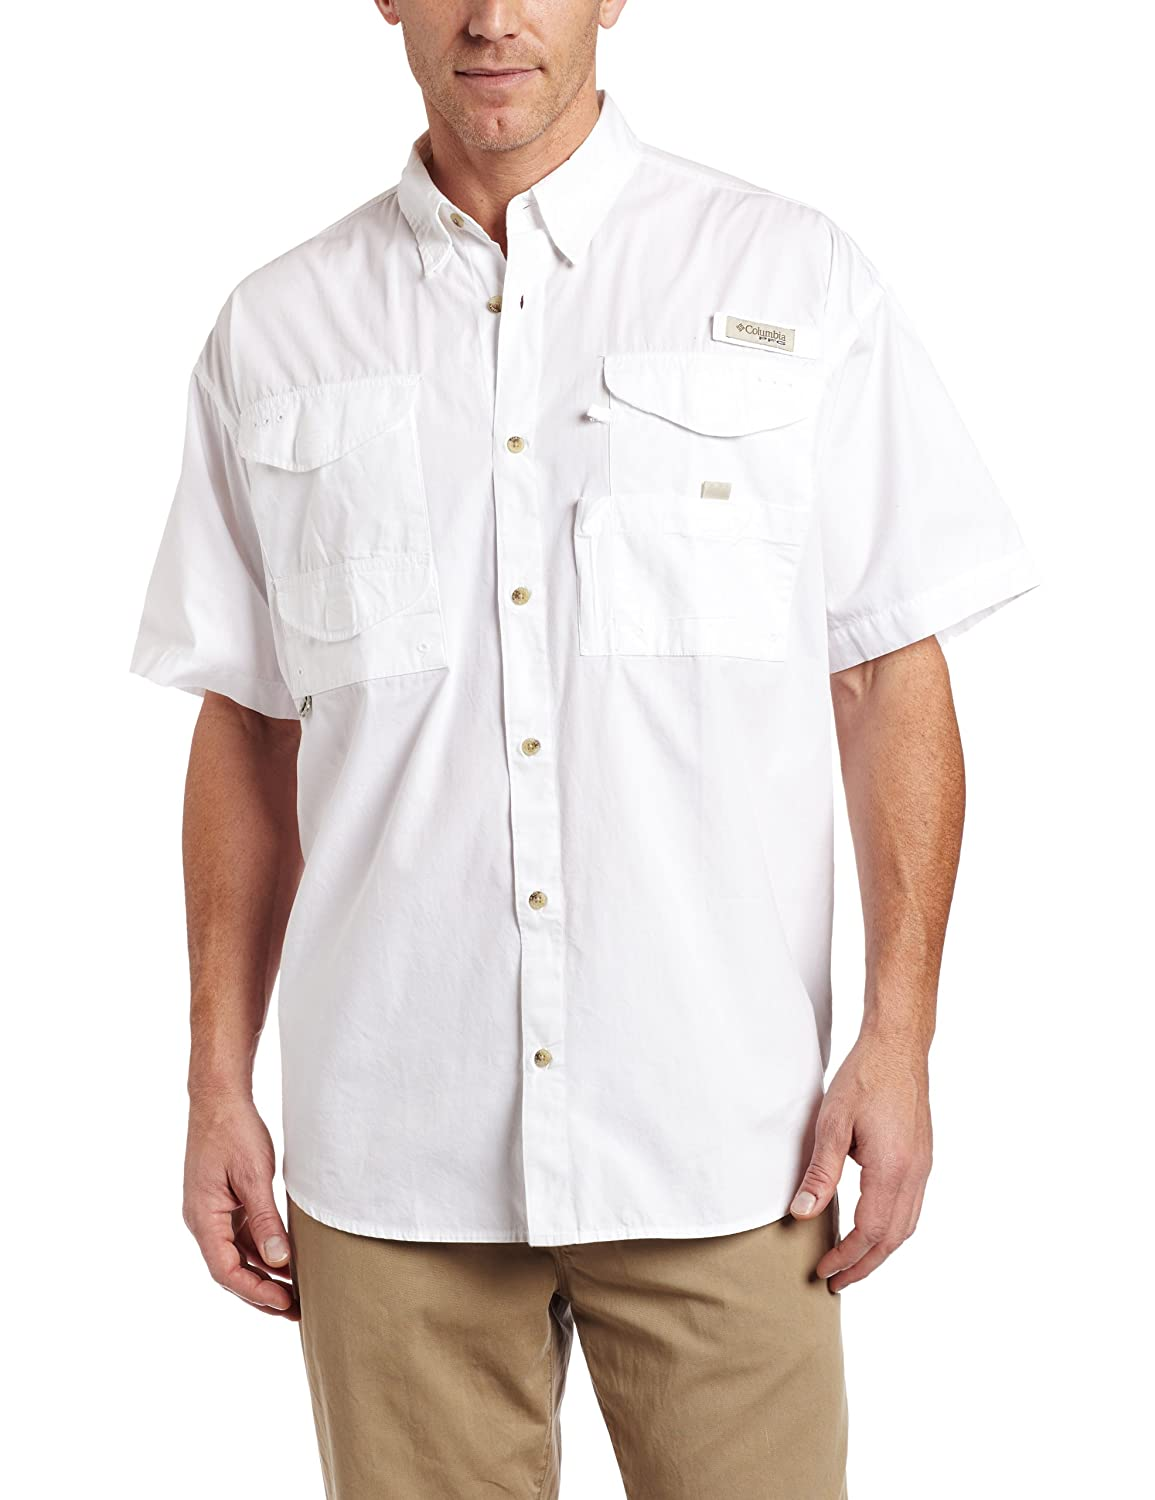 Columbia Men's Bonehead Short Sleeve Shirt,White,X-Large $24.69